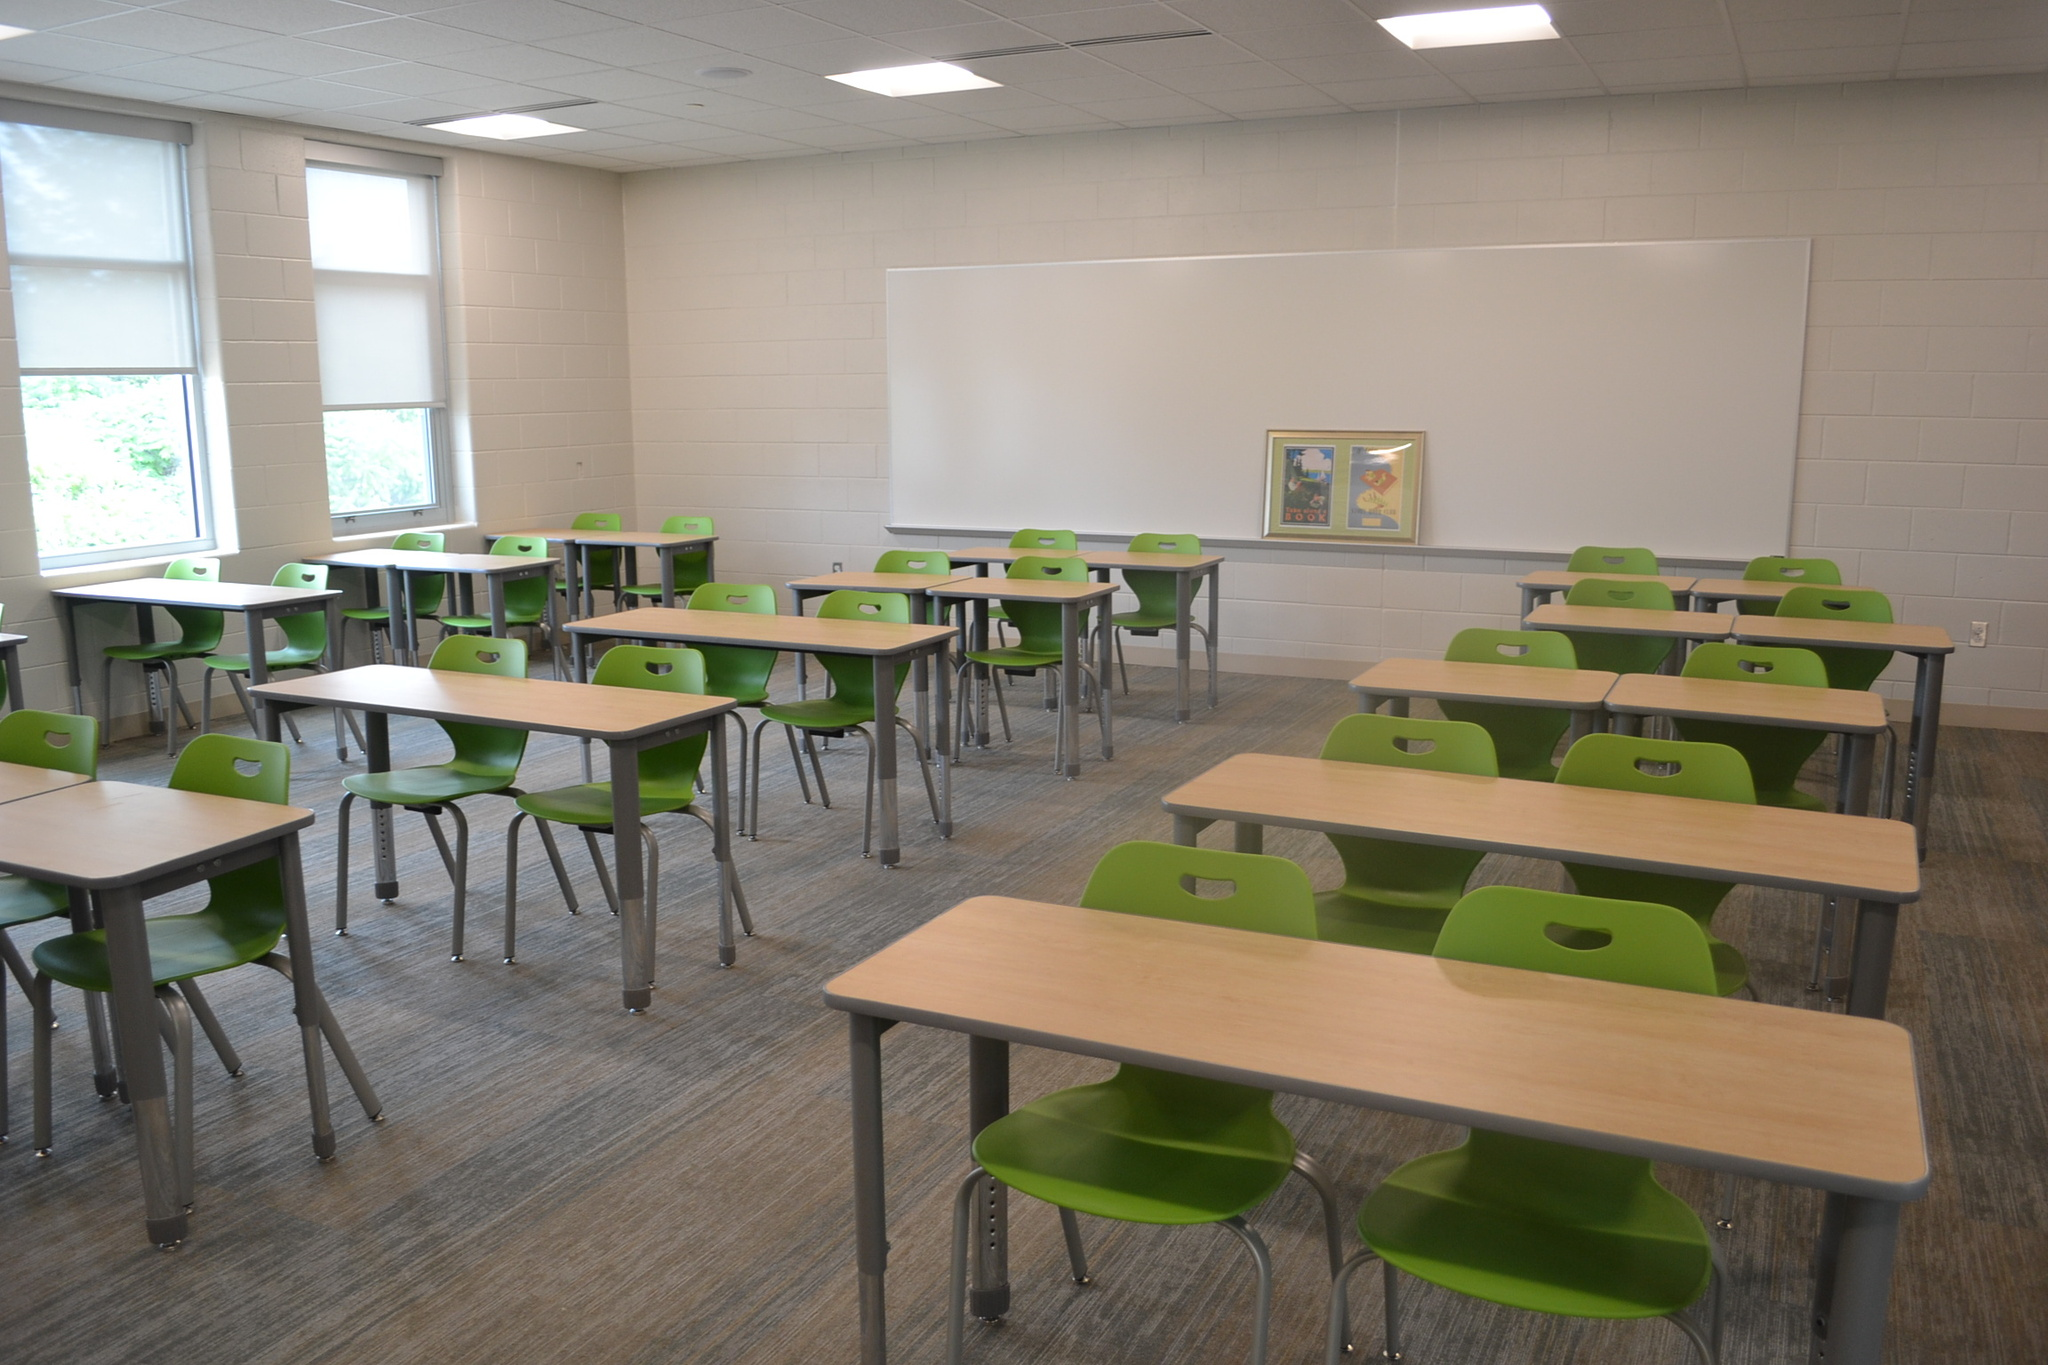 new classroom and furniture